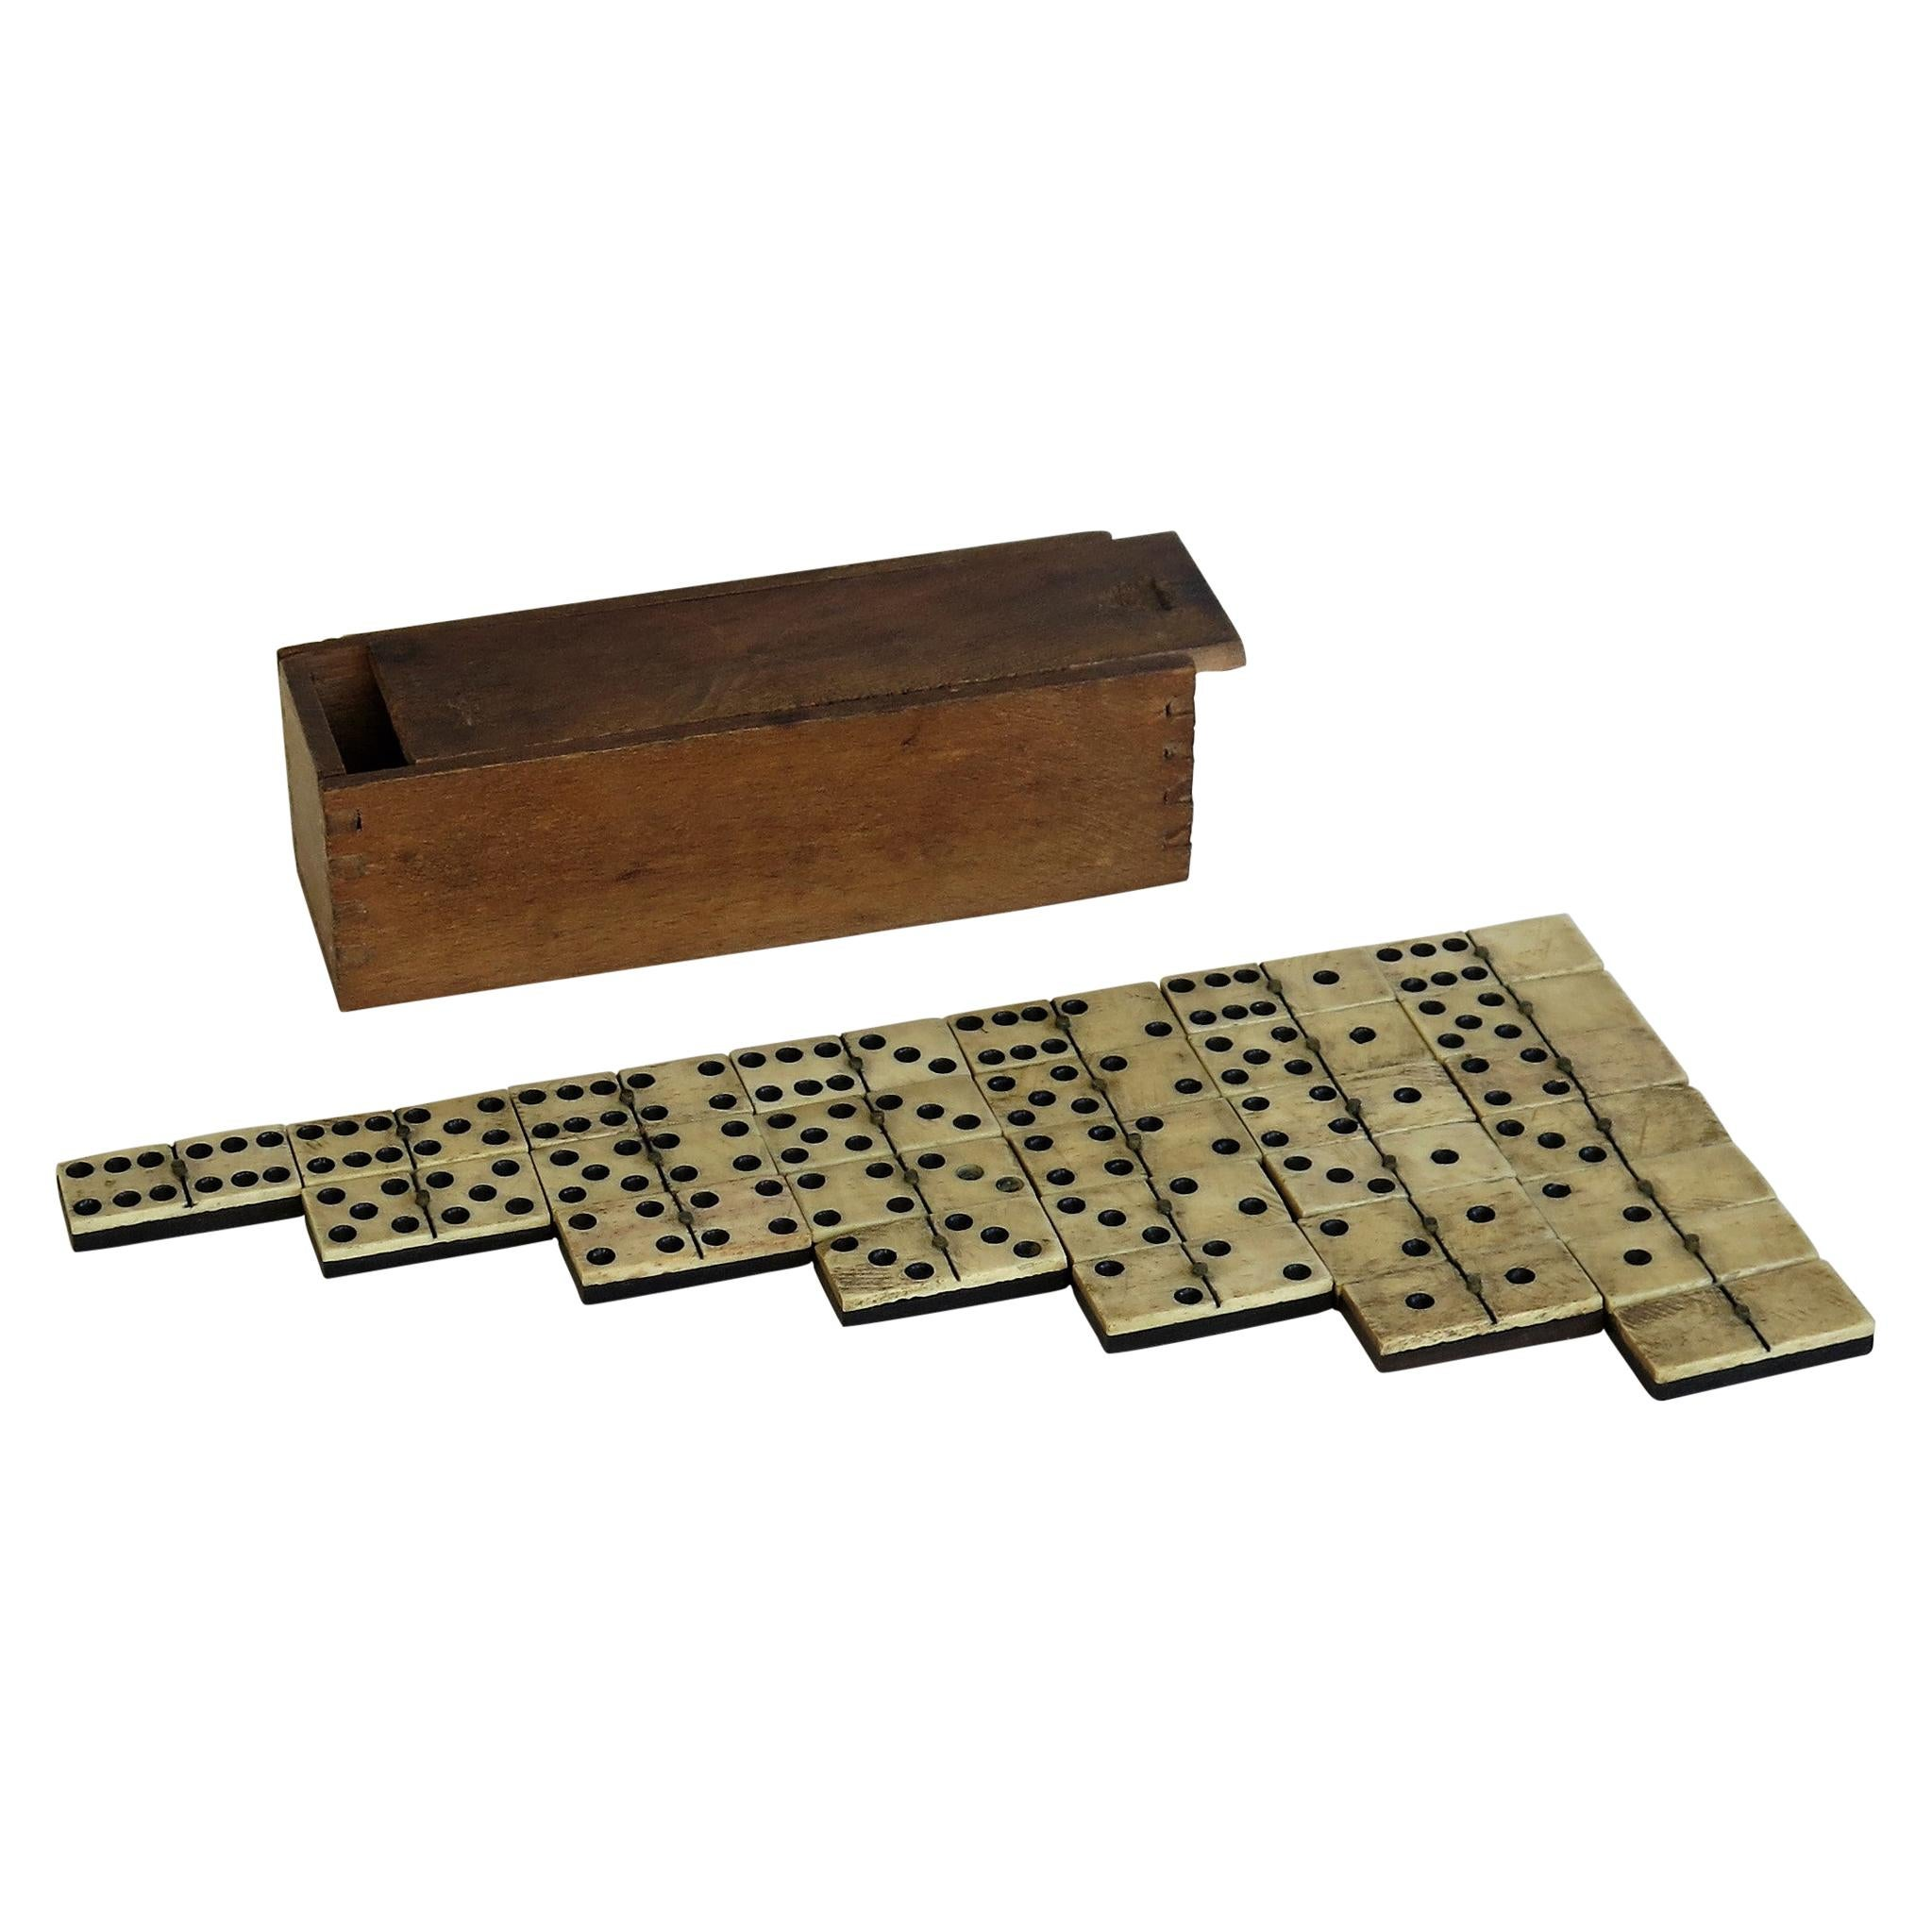 Complete 19th Century Domino Game in Hardwood Jointed Box, circa 1870